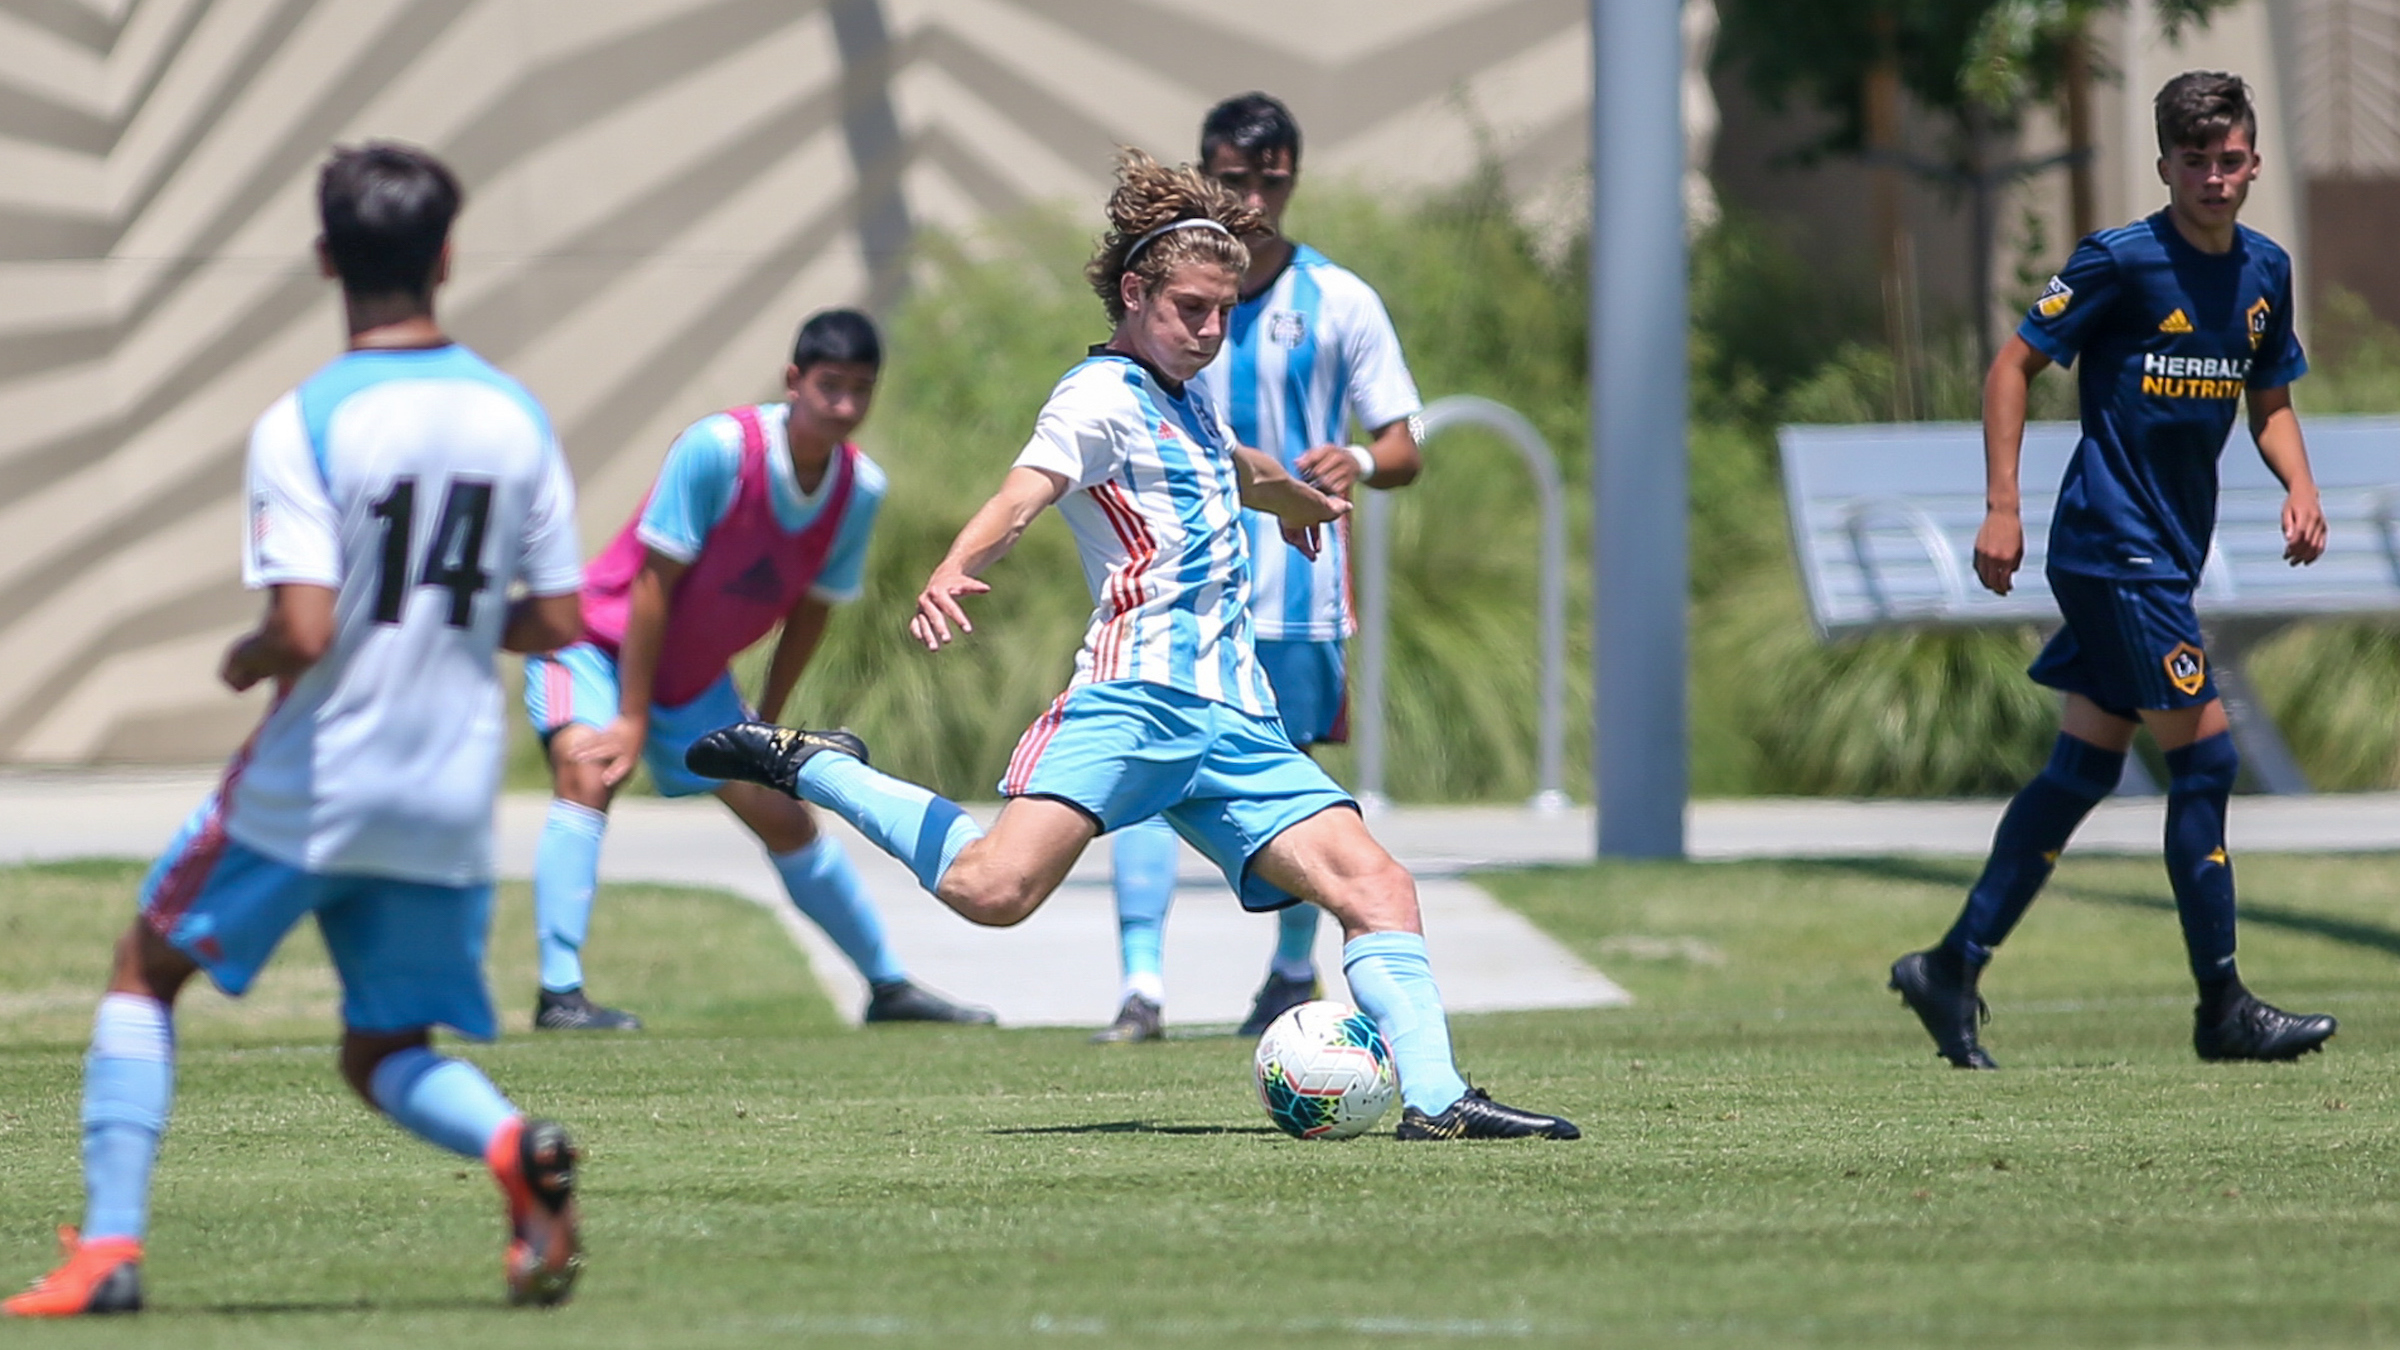 Full List Of Member Clubs In The New Mls Youth Academy League Mls Next Soccerwire